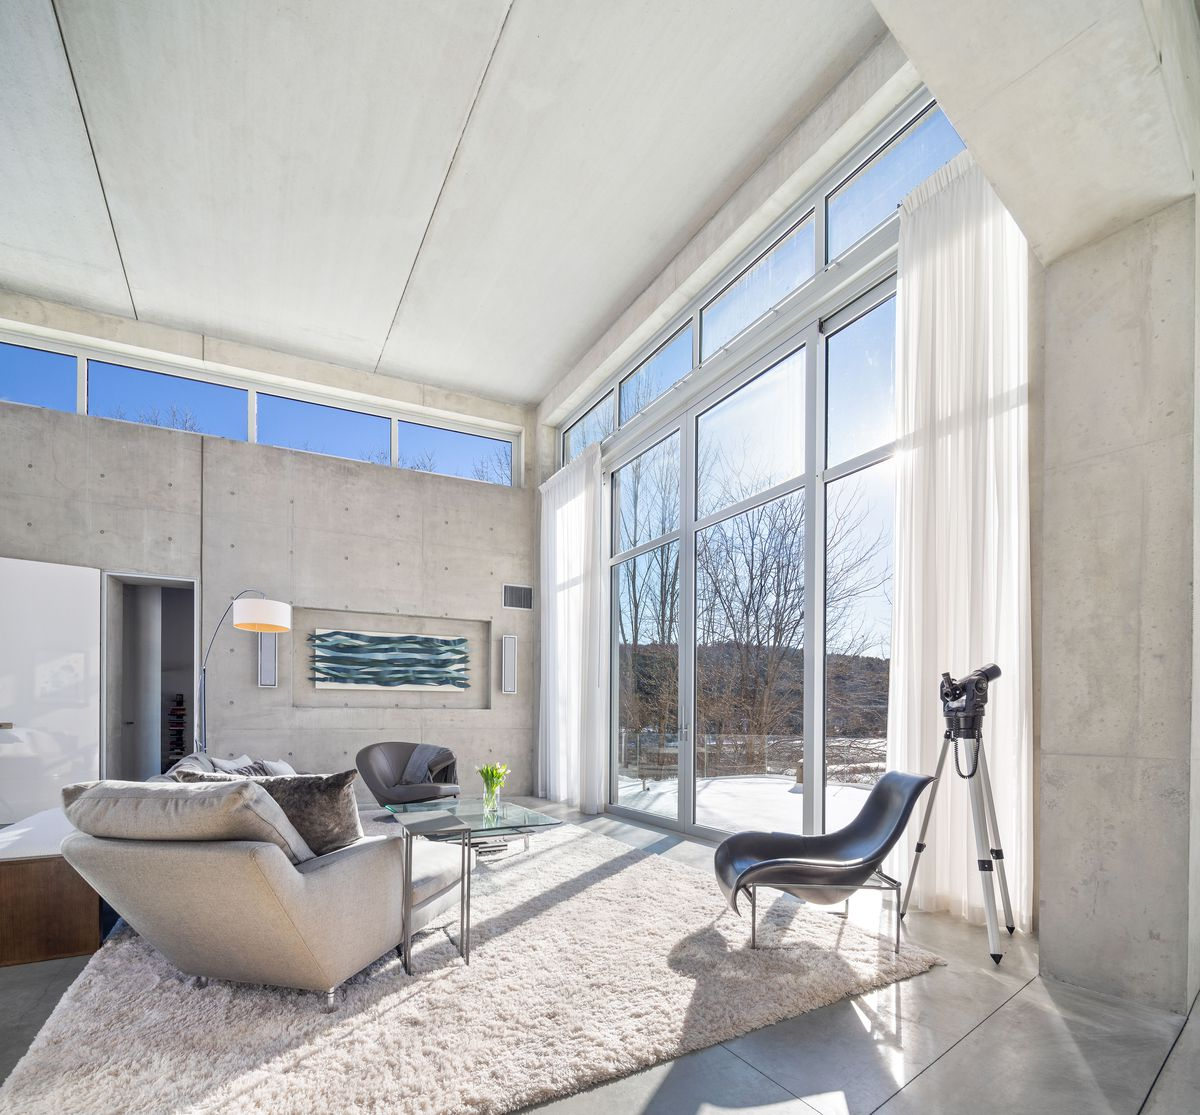 A living room has modern furniture on a white rug that faces large windows. The room has tall ceilings and concrete walls.